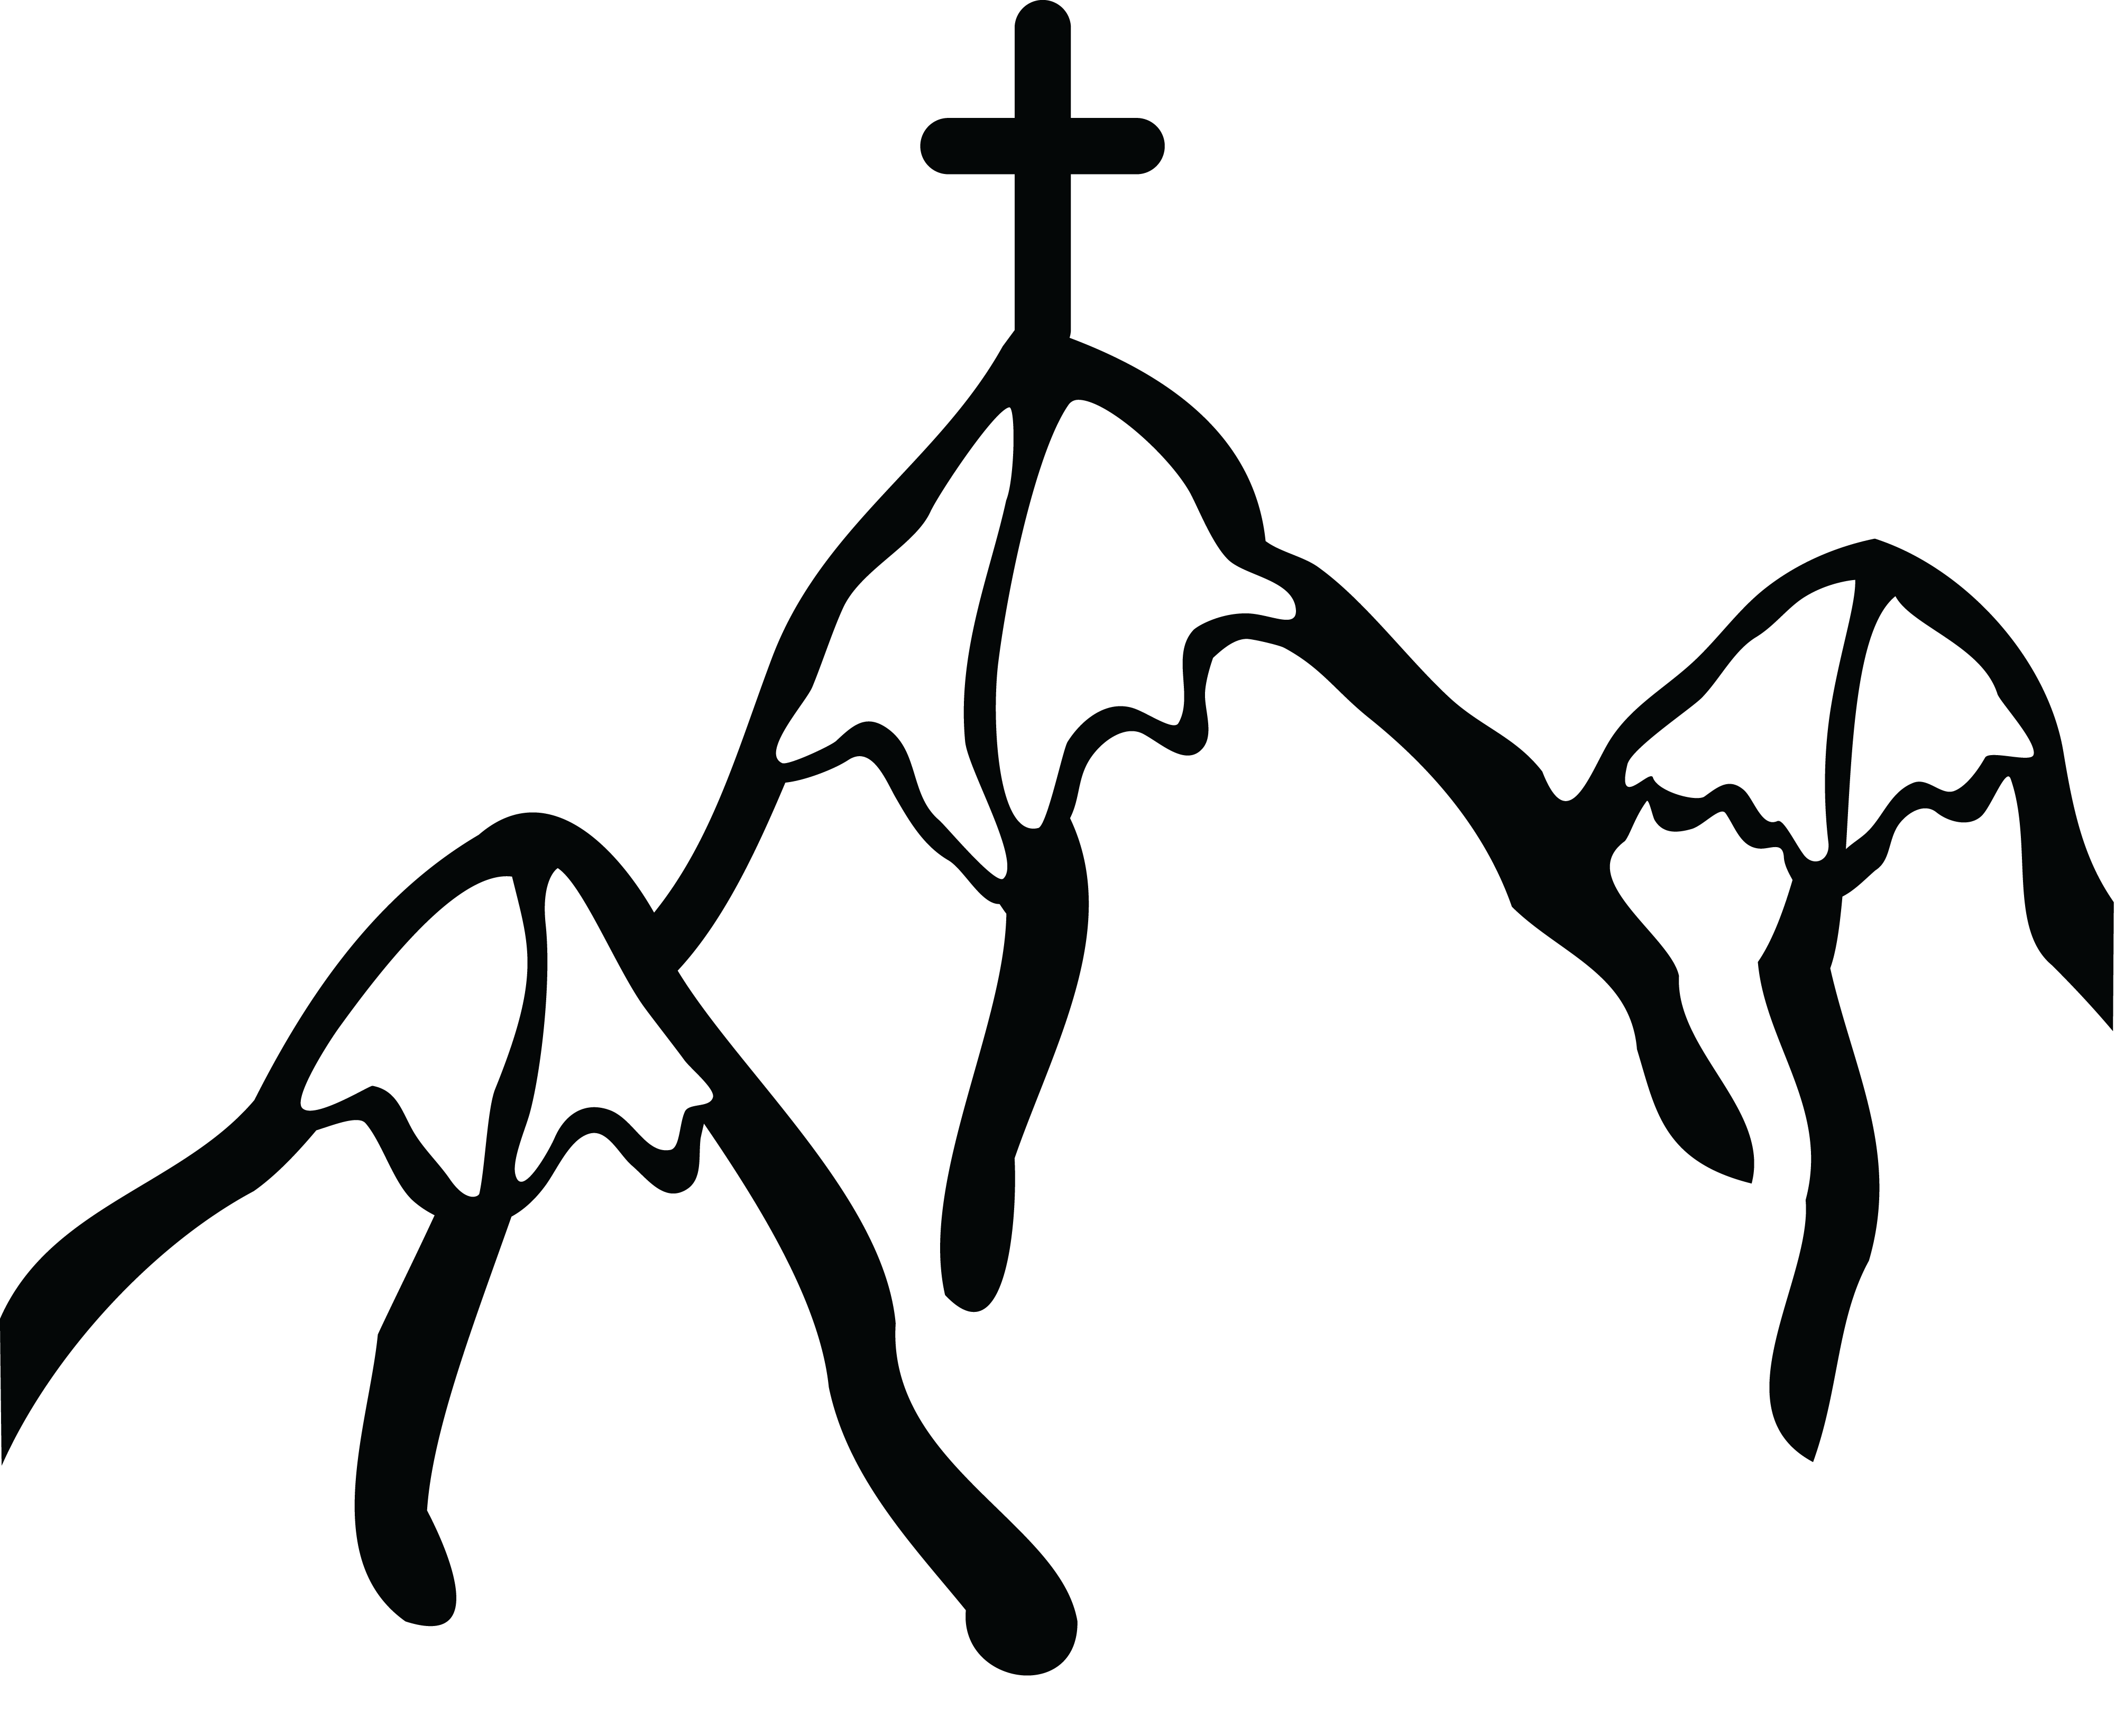 Clipart mountains black and white. Desktop backgrounds free of